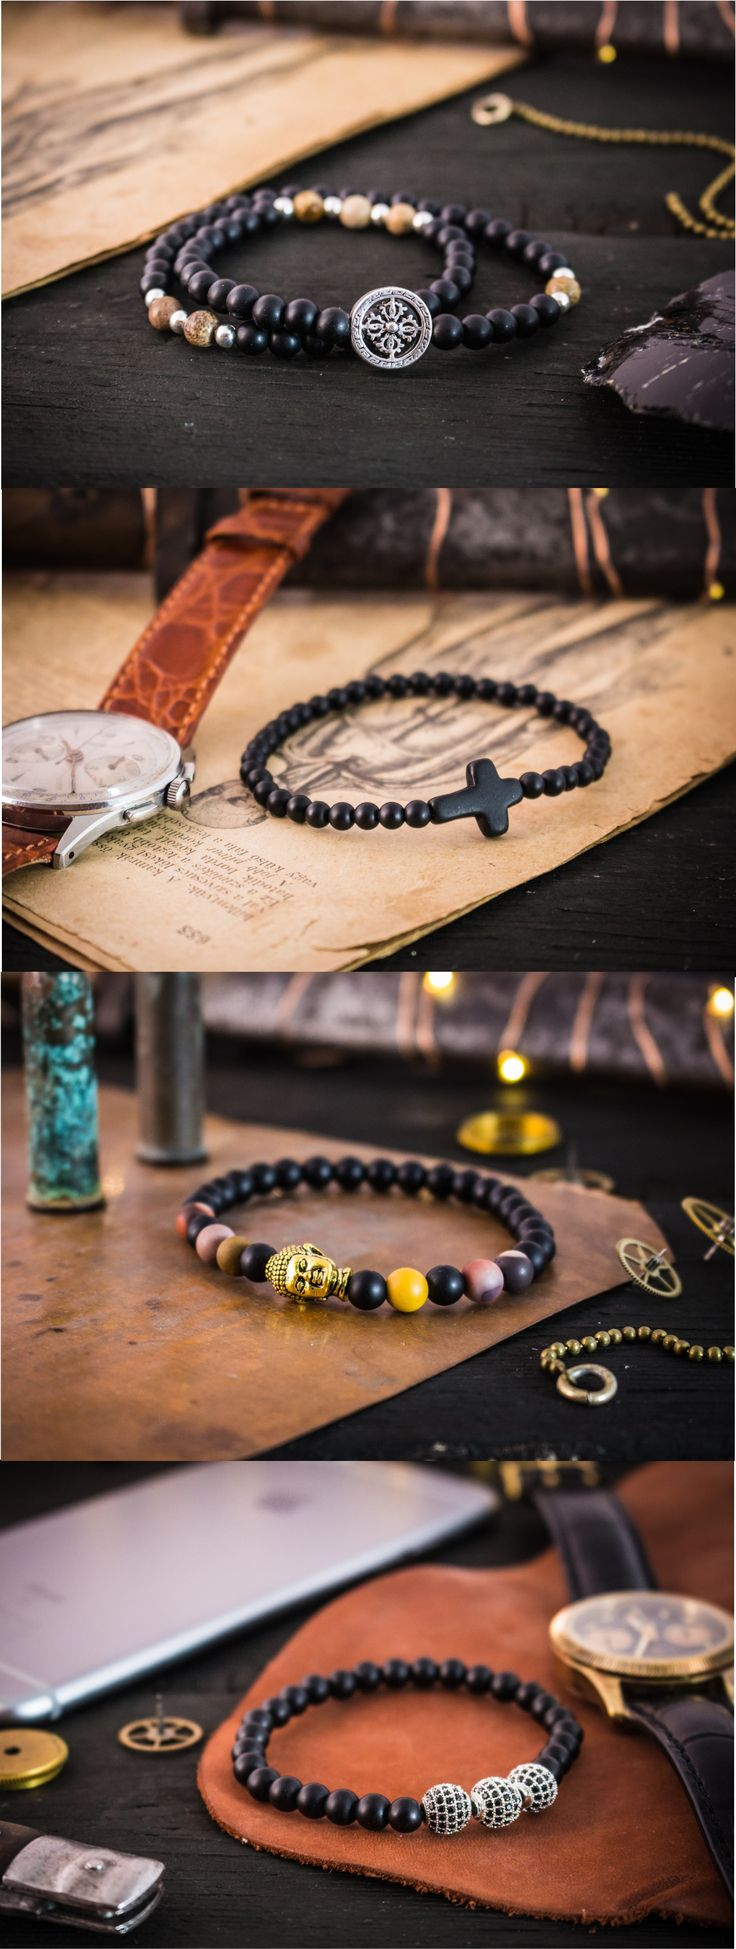 Handcrafted bracelets for men #mensbracelet